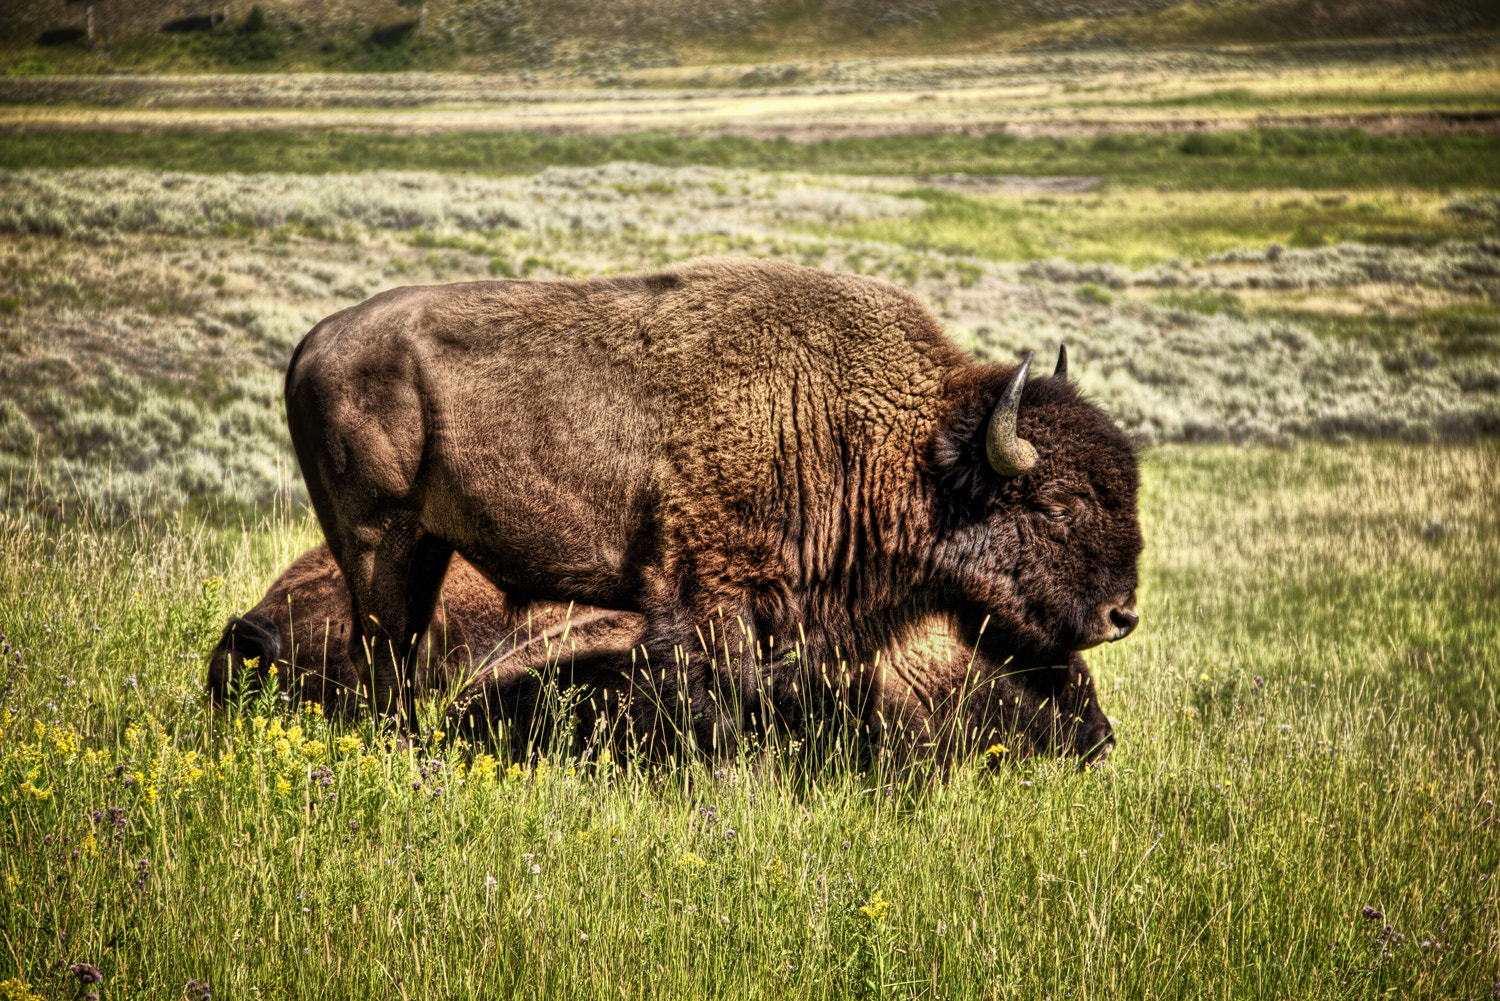 Photograph Yellowstone Bison by Ian McConnell on 500px